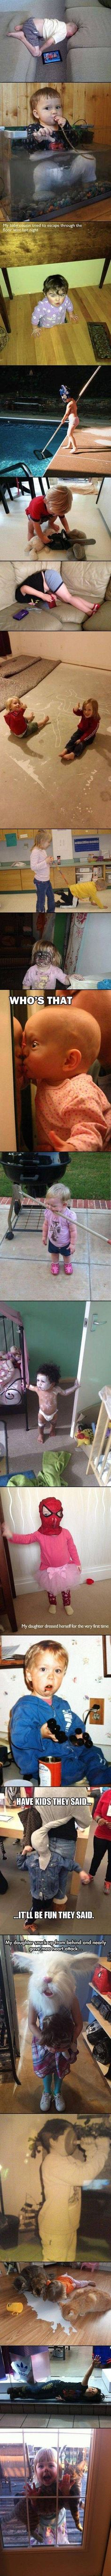 Kids Can Be Weird #lol #haha #funny